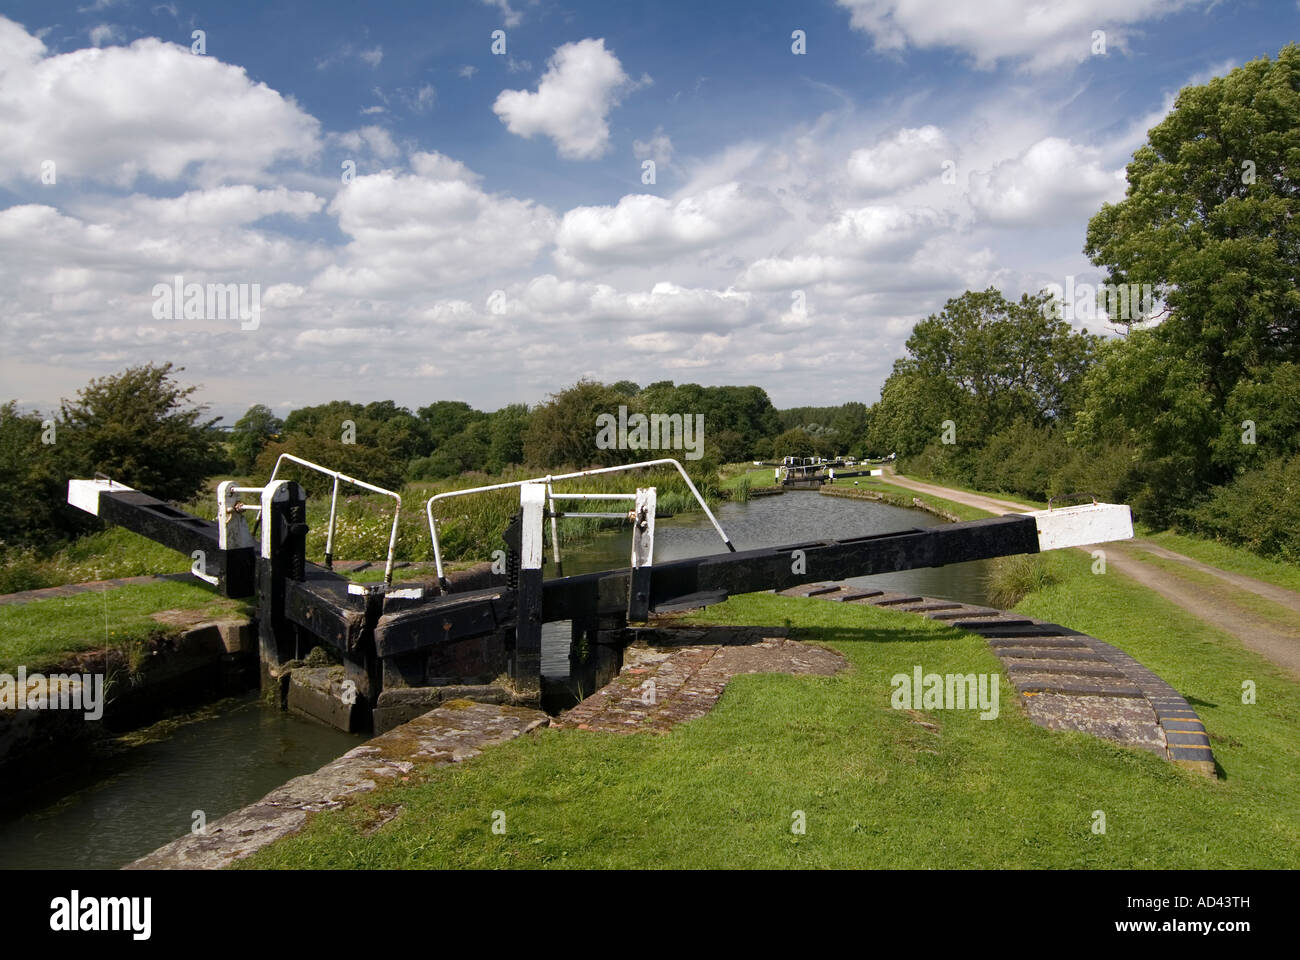 Doug Blane The Northampton arm of the Grand Union canal - Stock Image